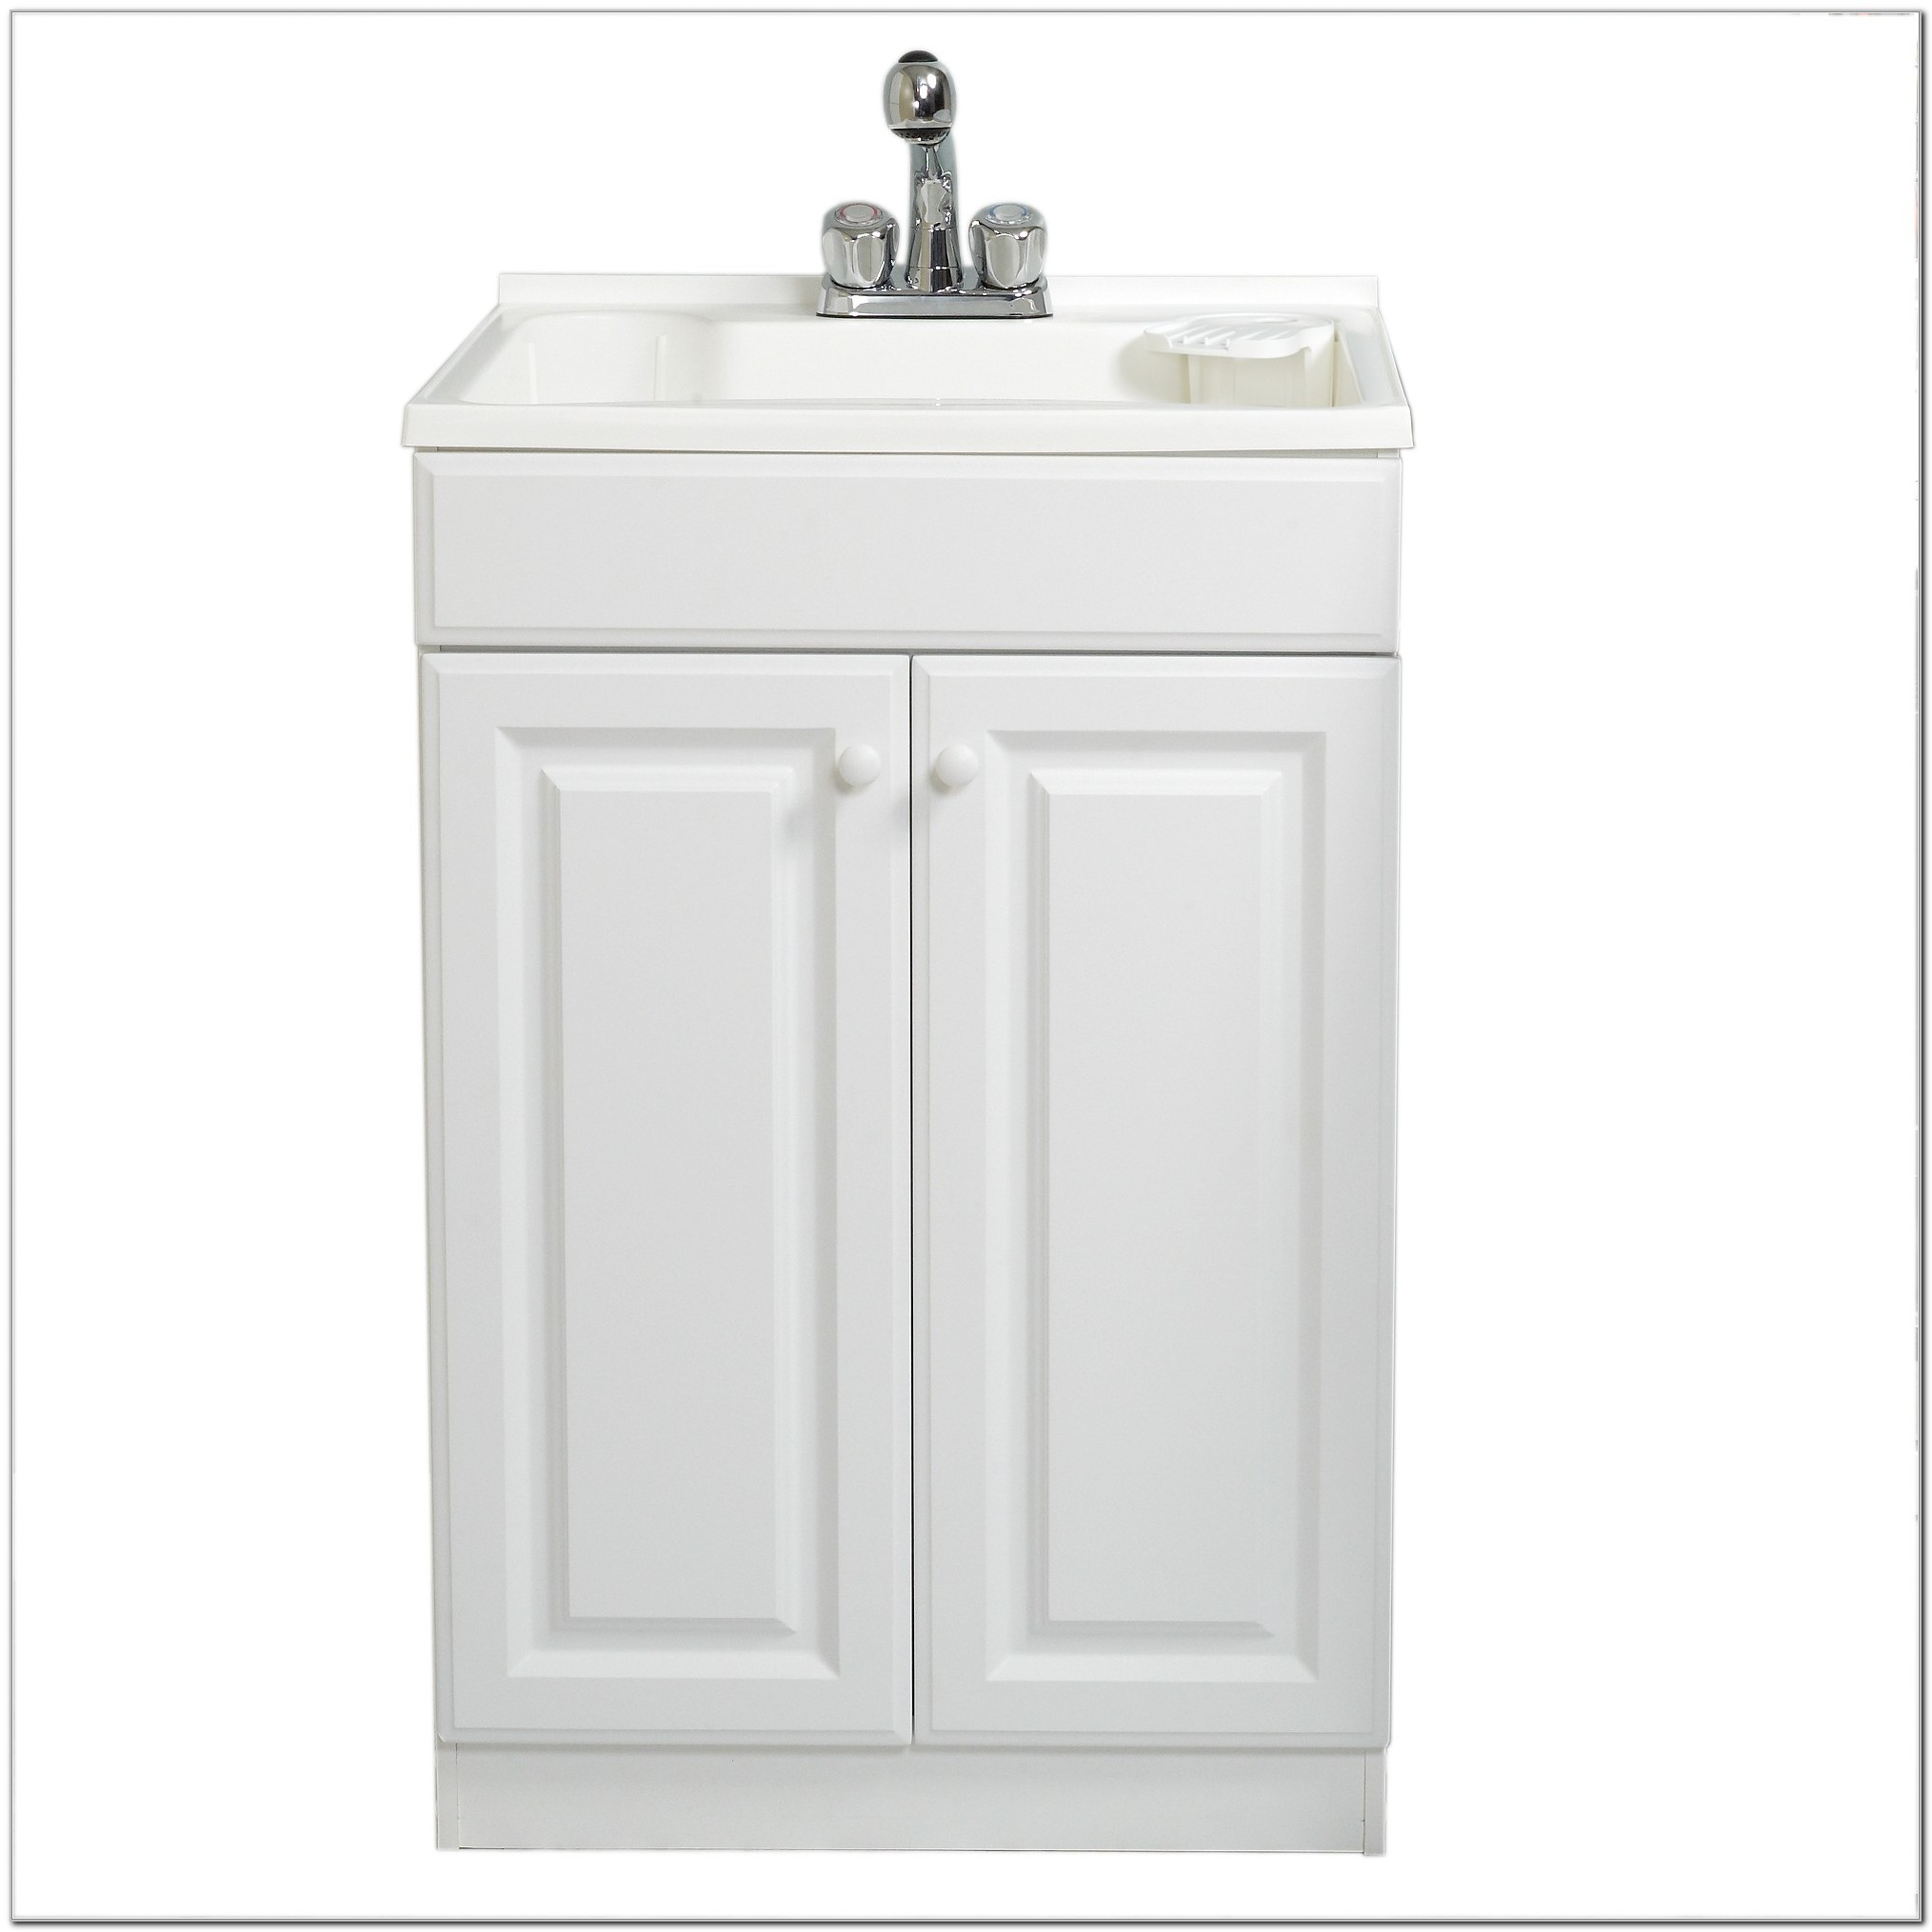 Utility Tub With Cabinet